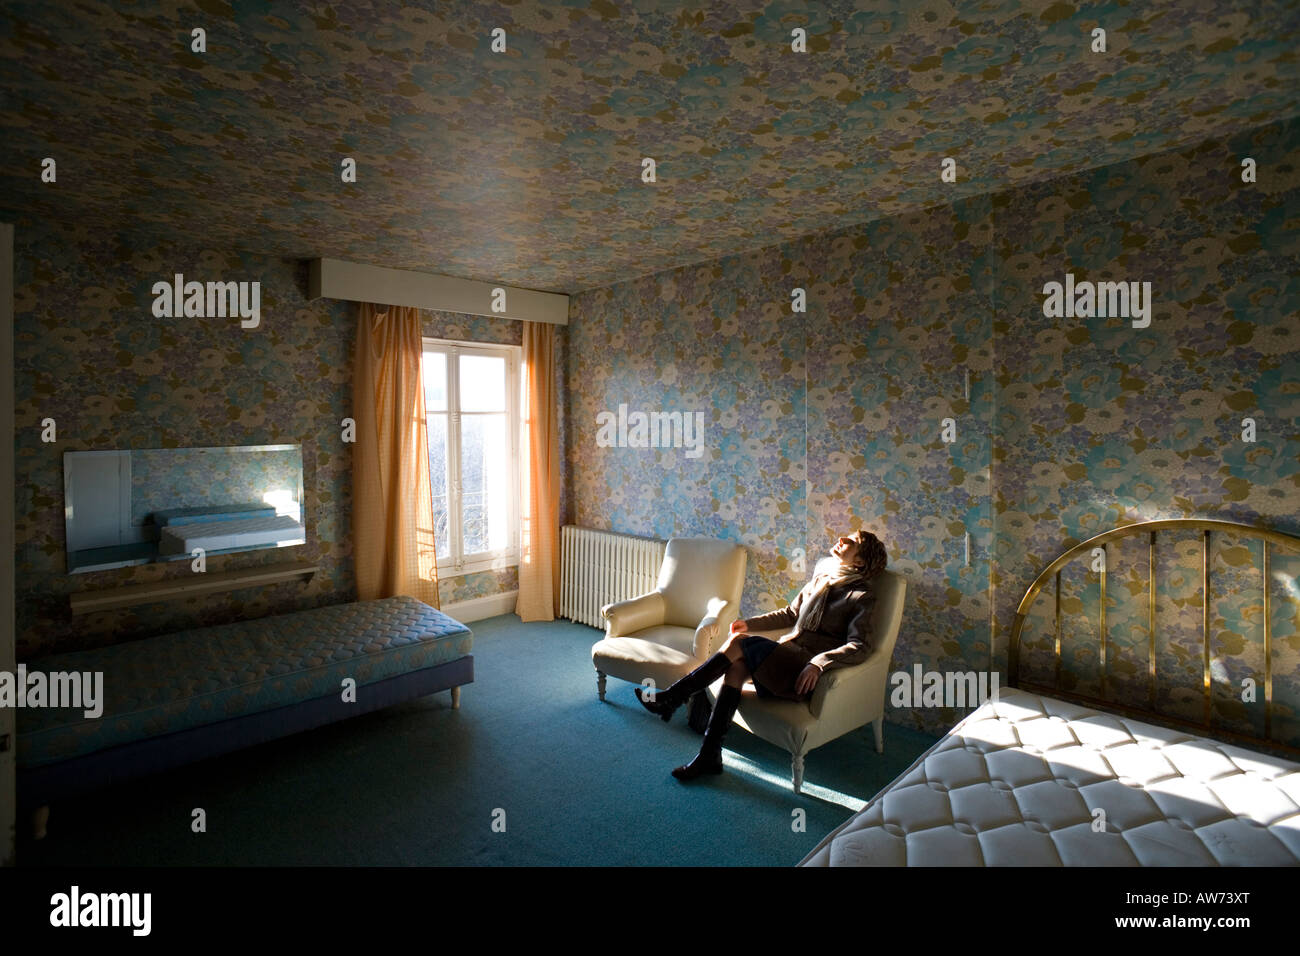 old fashioned hotel stock photos old fashioned hotel stock images alamy. Black Bedroom Furniture Sets. Home Design Ideas